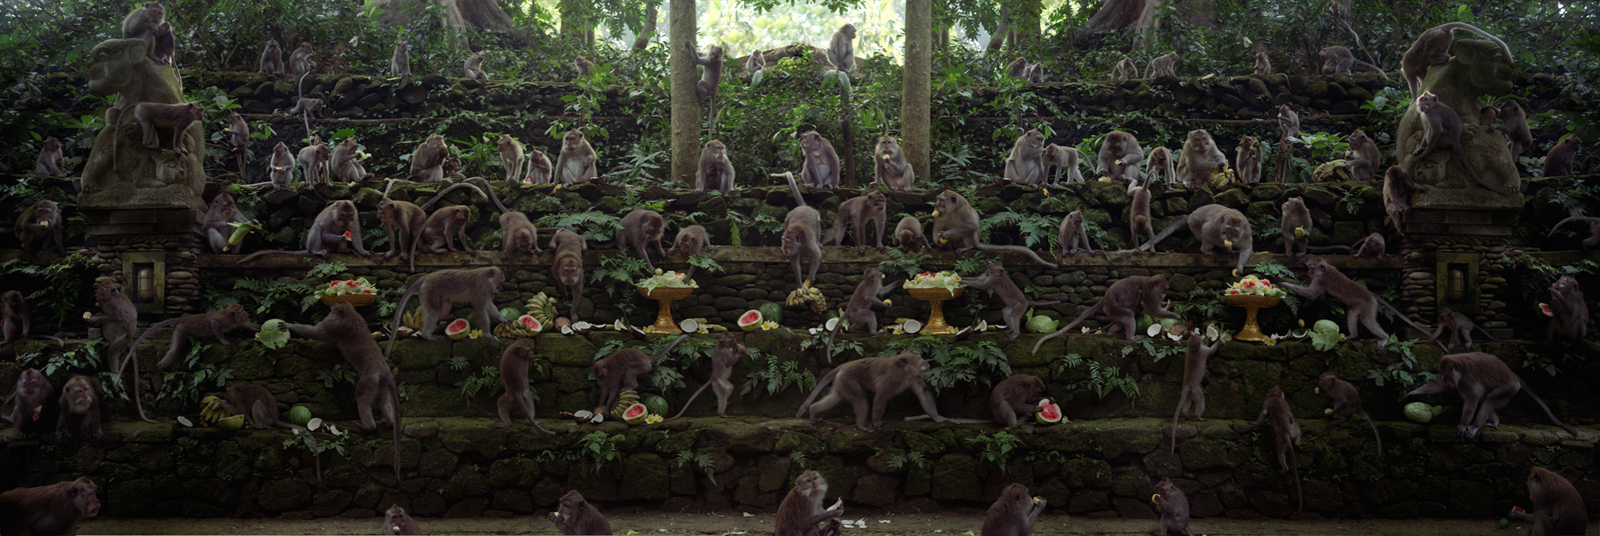 """The Long Tailed Macaque Feast  Indonesia, 2015  10""""x30"""" 